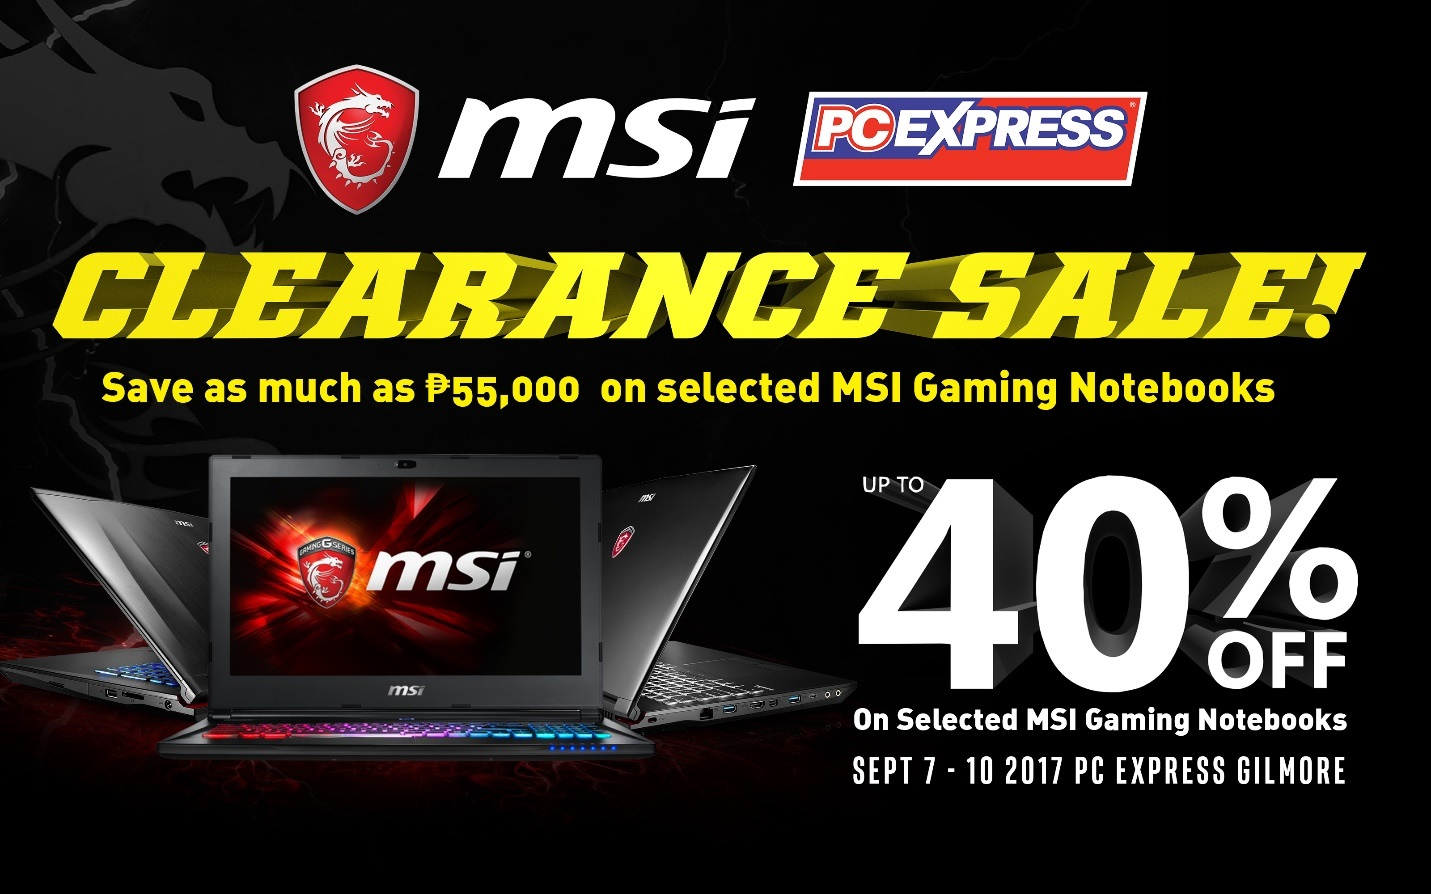 MSI Clearance Sale Exclusive to  PC Express Gilmore